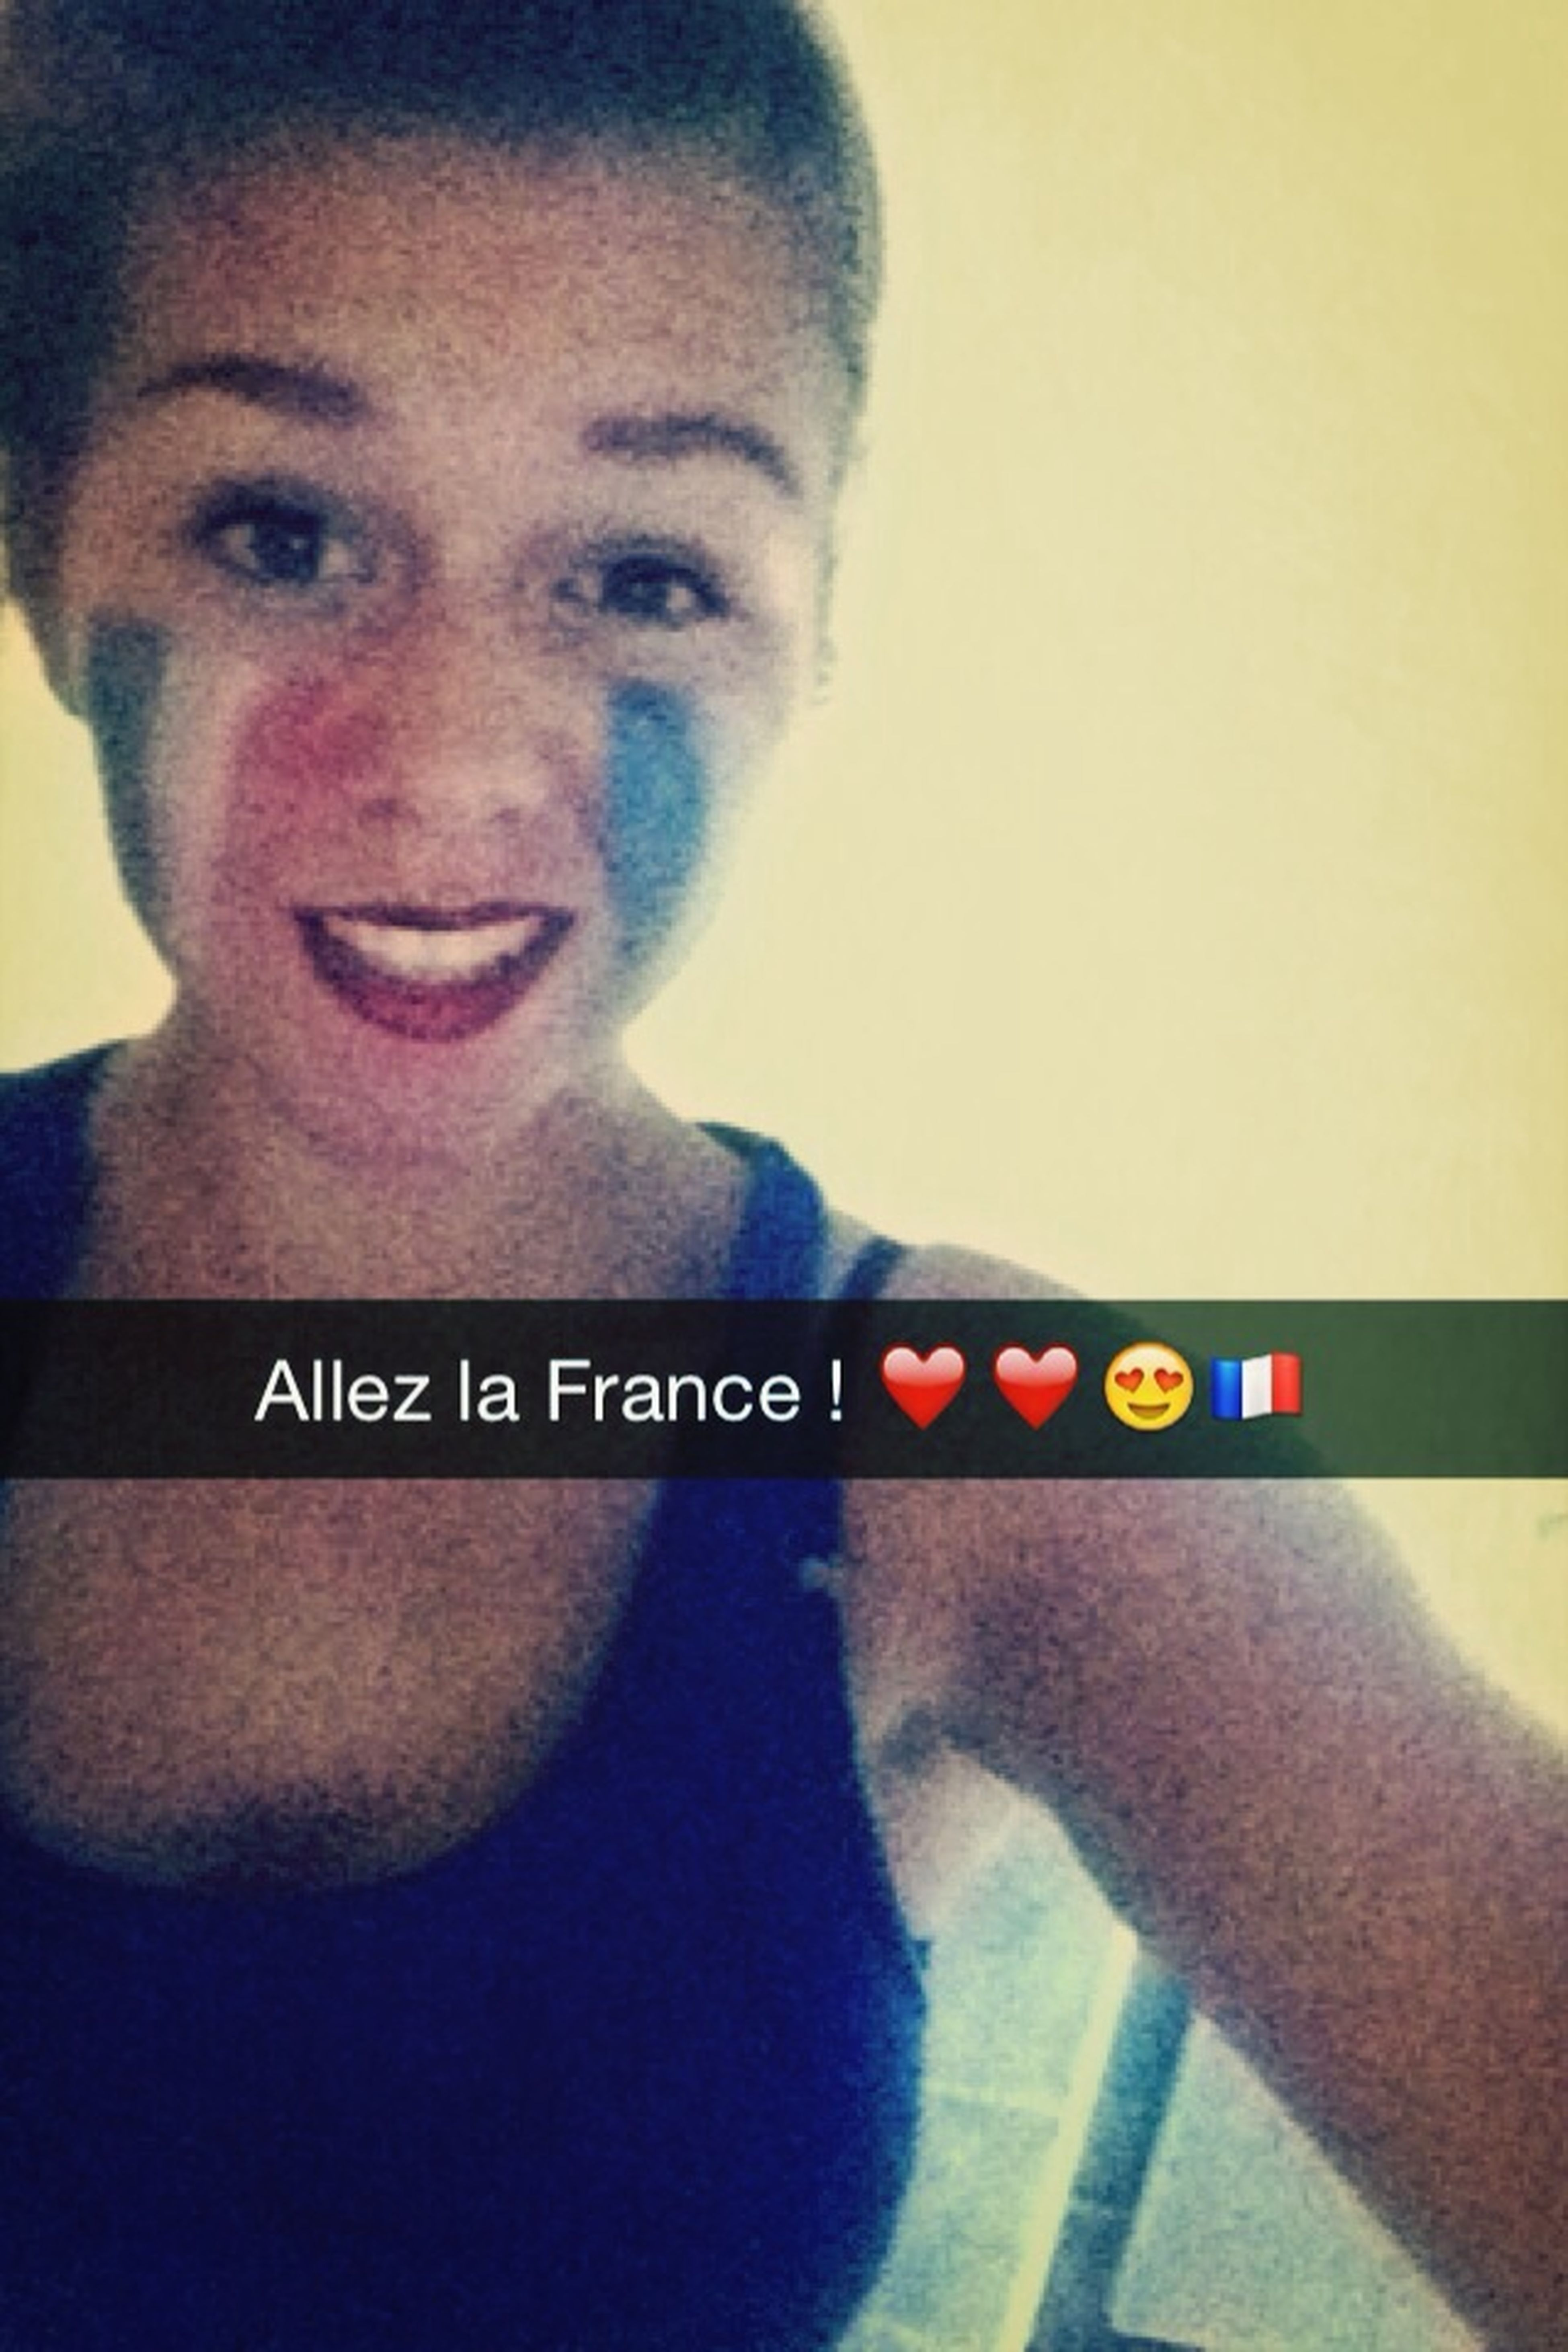 FRANCIA ❤️ CoupeDuMonde2014 We Are Onefootball France Enjoying Life